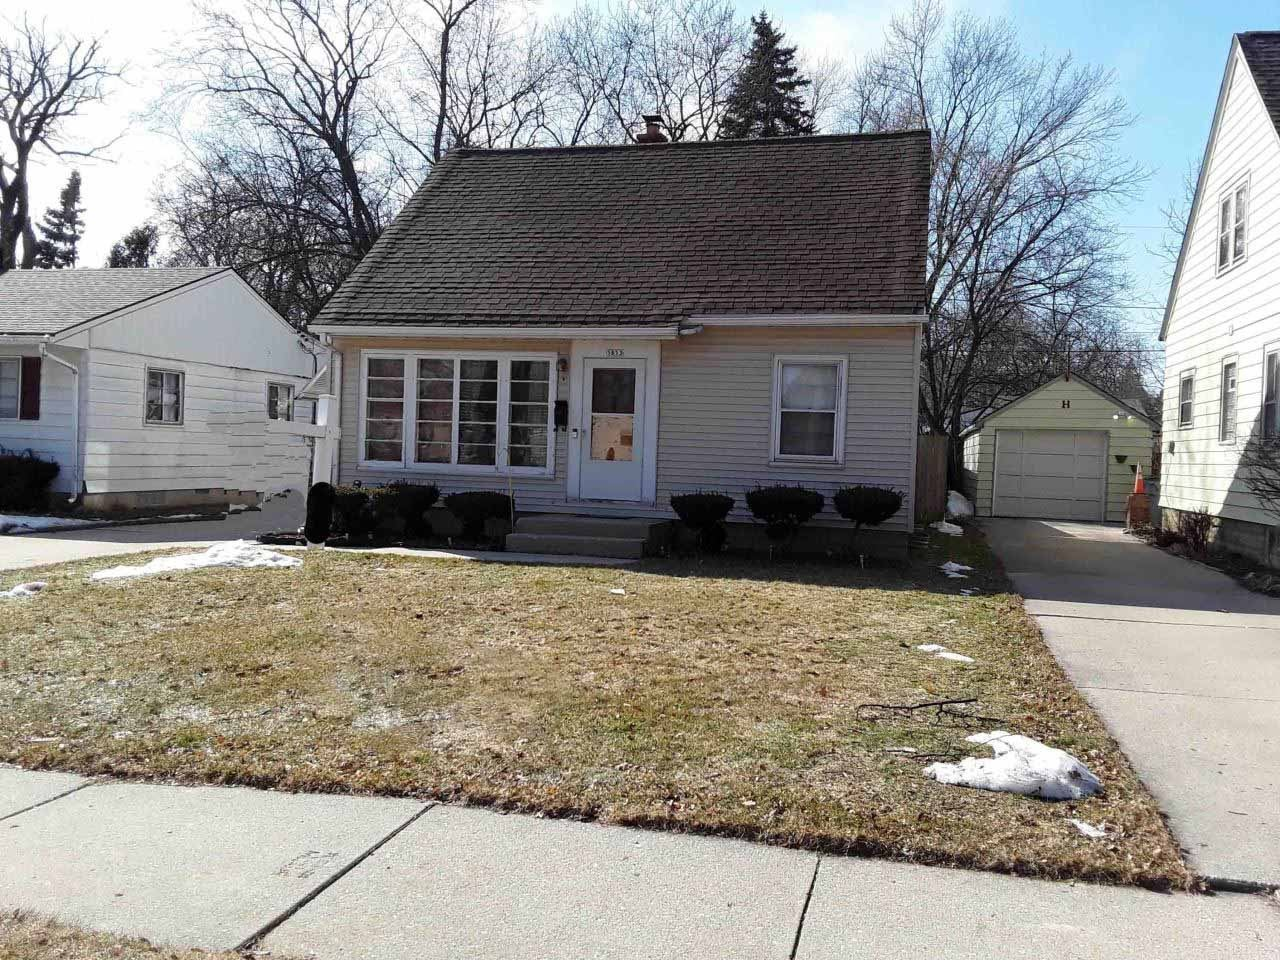 5853 N 35th St, Milwaukee, WI 53209 - #: 1679322